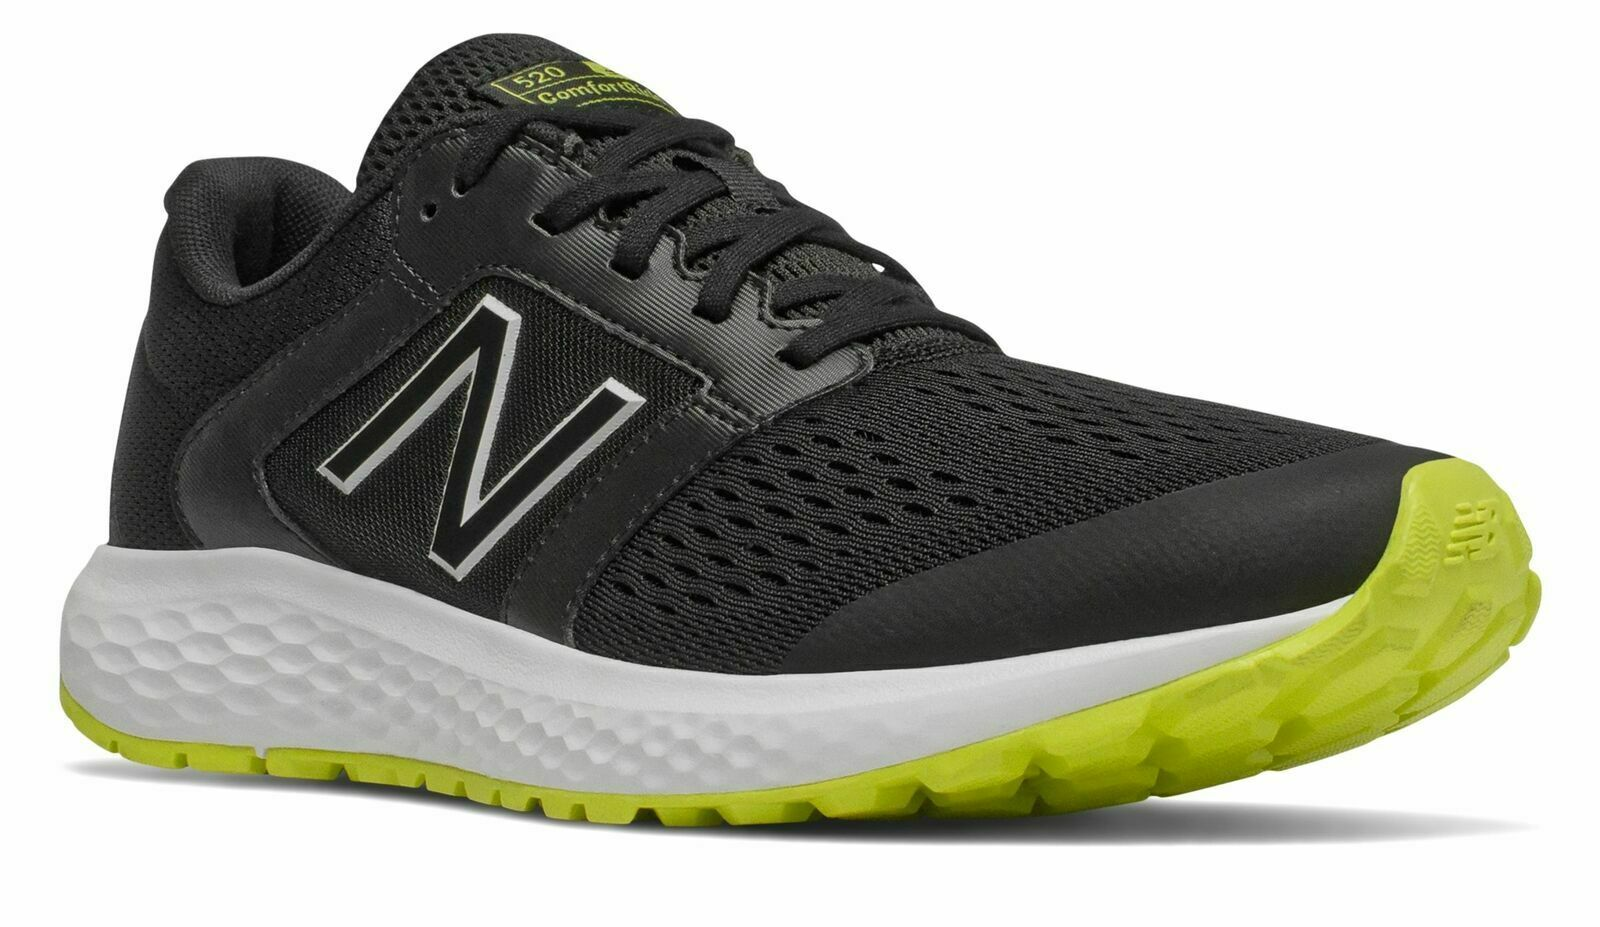 New Balance Men's 520V5 Shoes Black with Yellow Size 12